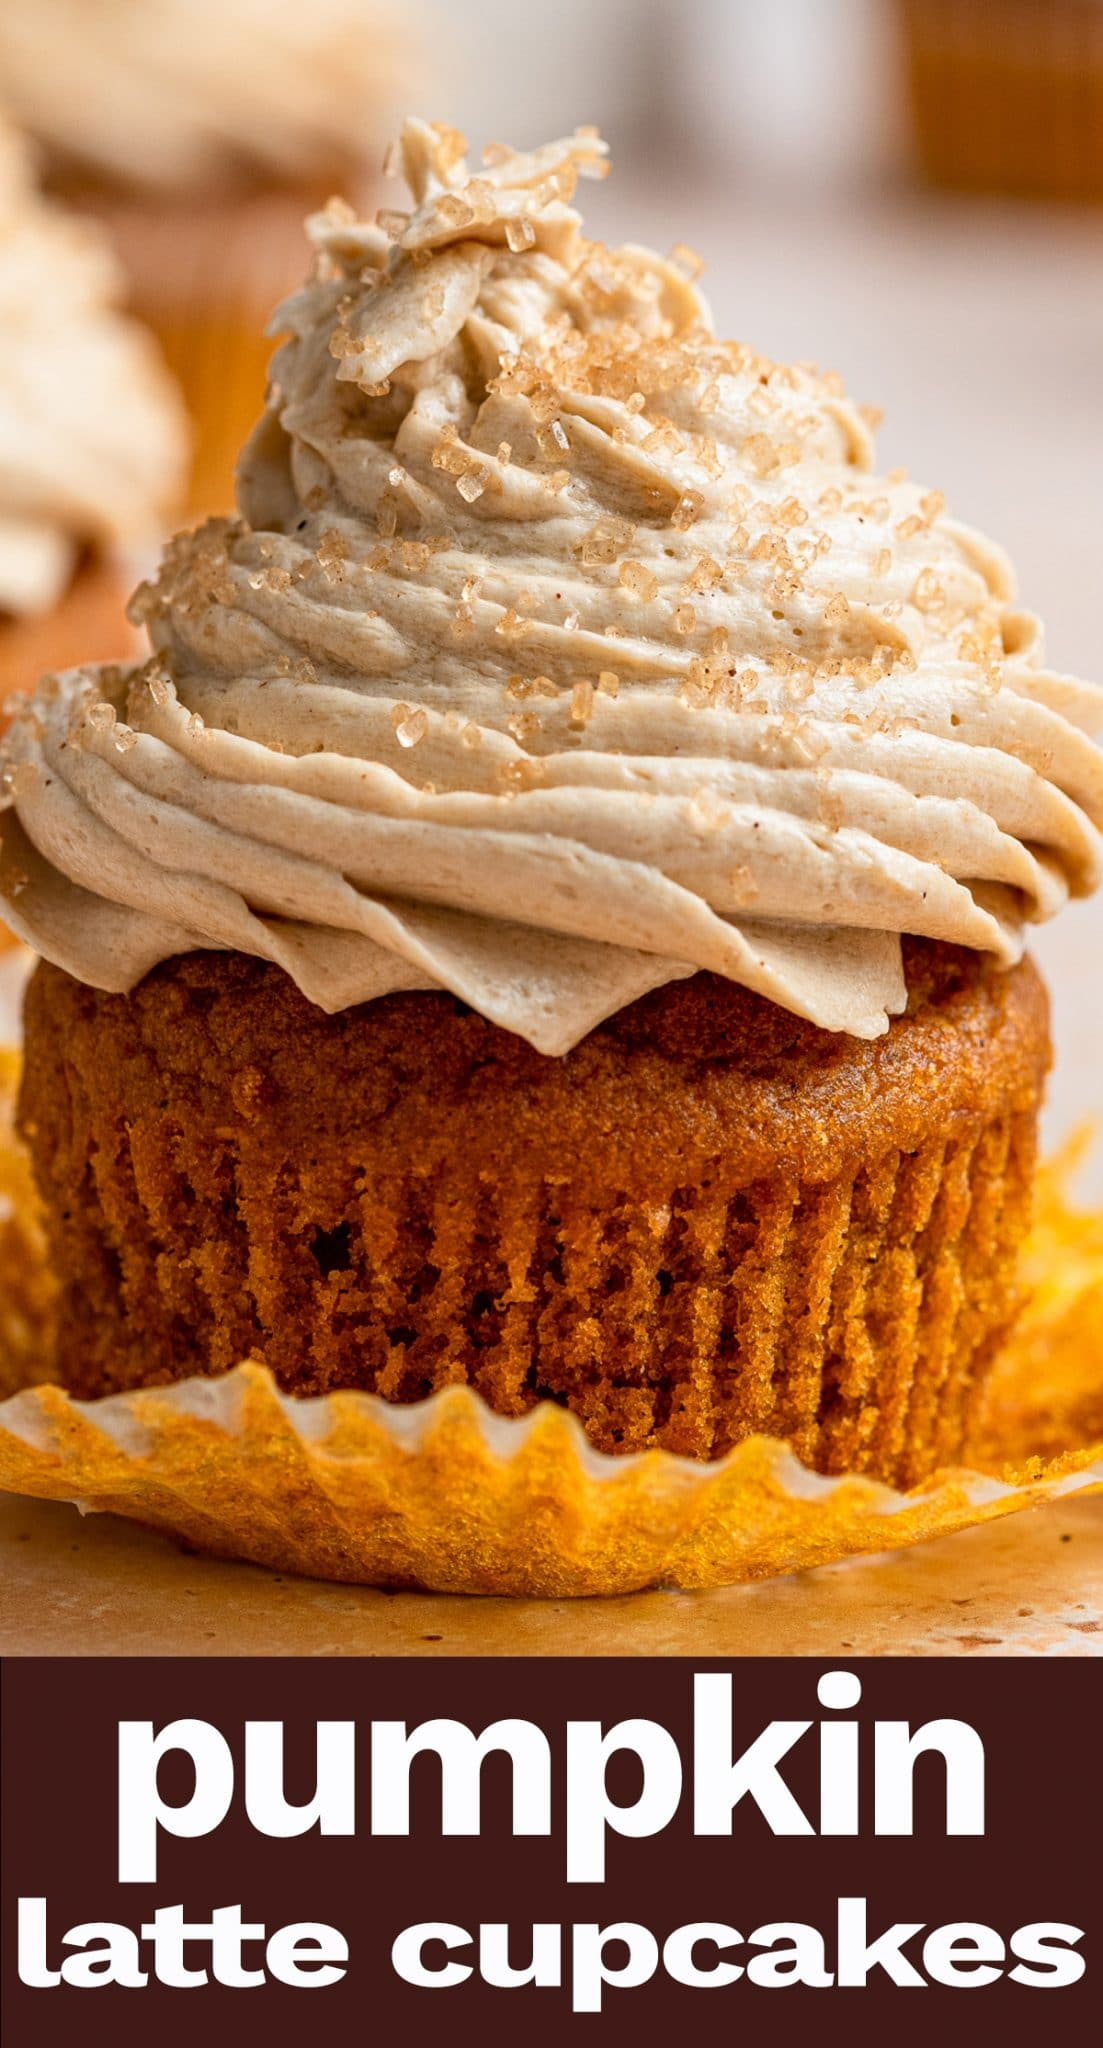 Pumpkin Spice Latte Cupcakes are a perfect fall dessert. Tender and moist, full of warm spices, topped with silky smooth latte buttercream and sprinkled with cinnamon sugar. A perfect dessert to welcome sweater weather. via @thebestcakerecipes